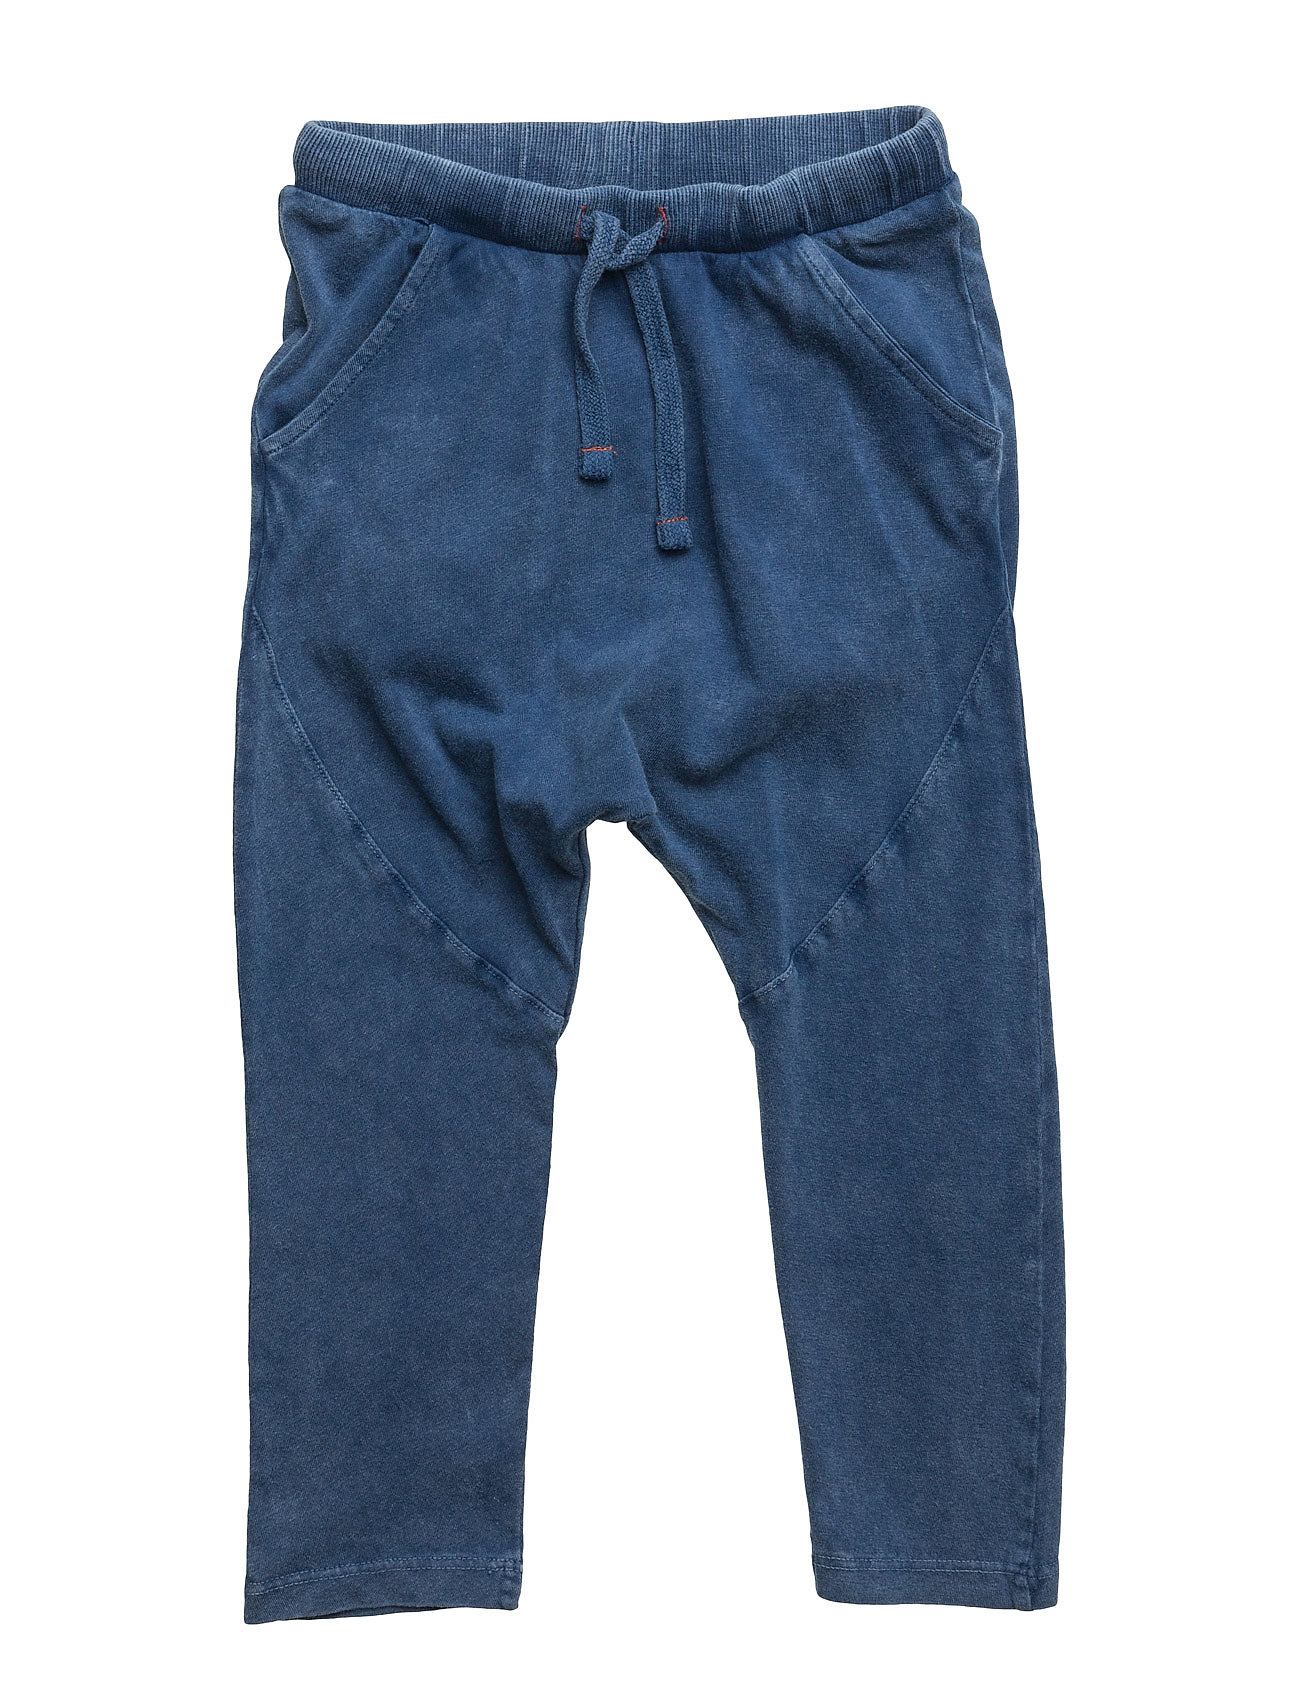 Washed Cotton-Blend Jogging Trousers Mango Kids Bukser til Drenge i Medium Blå